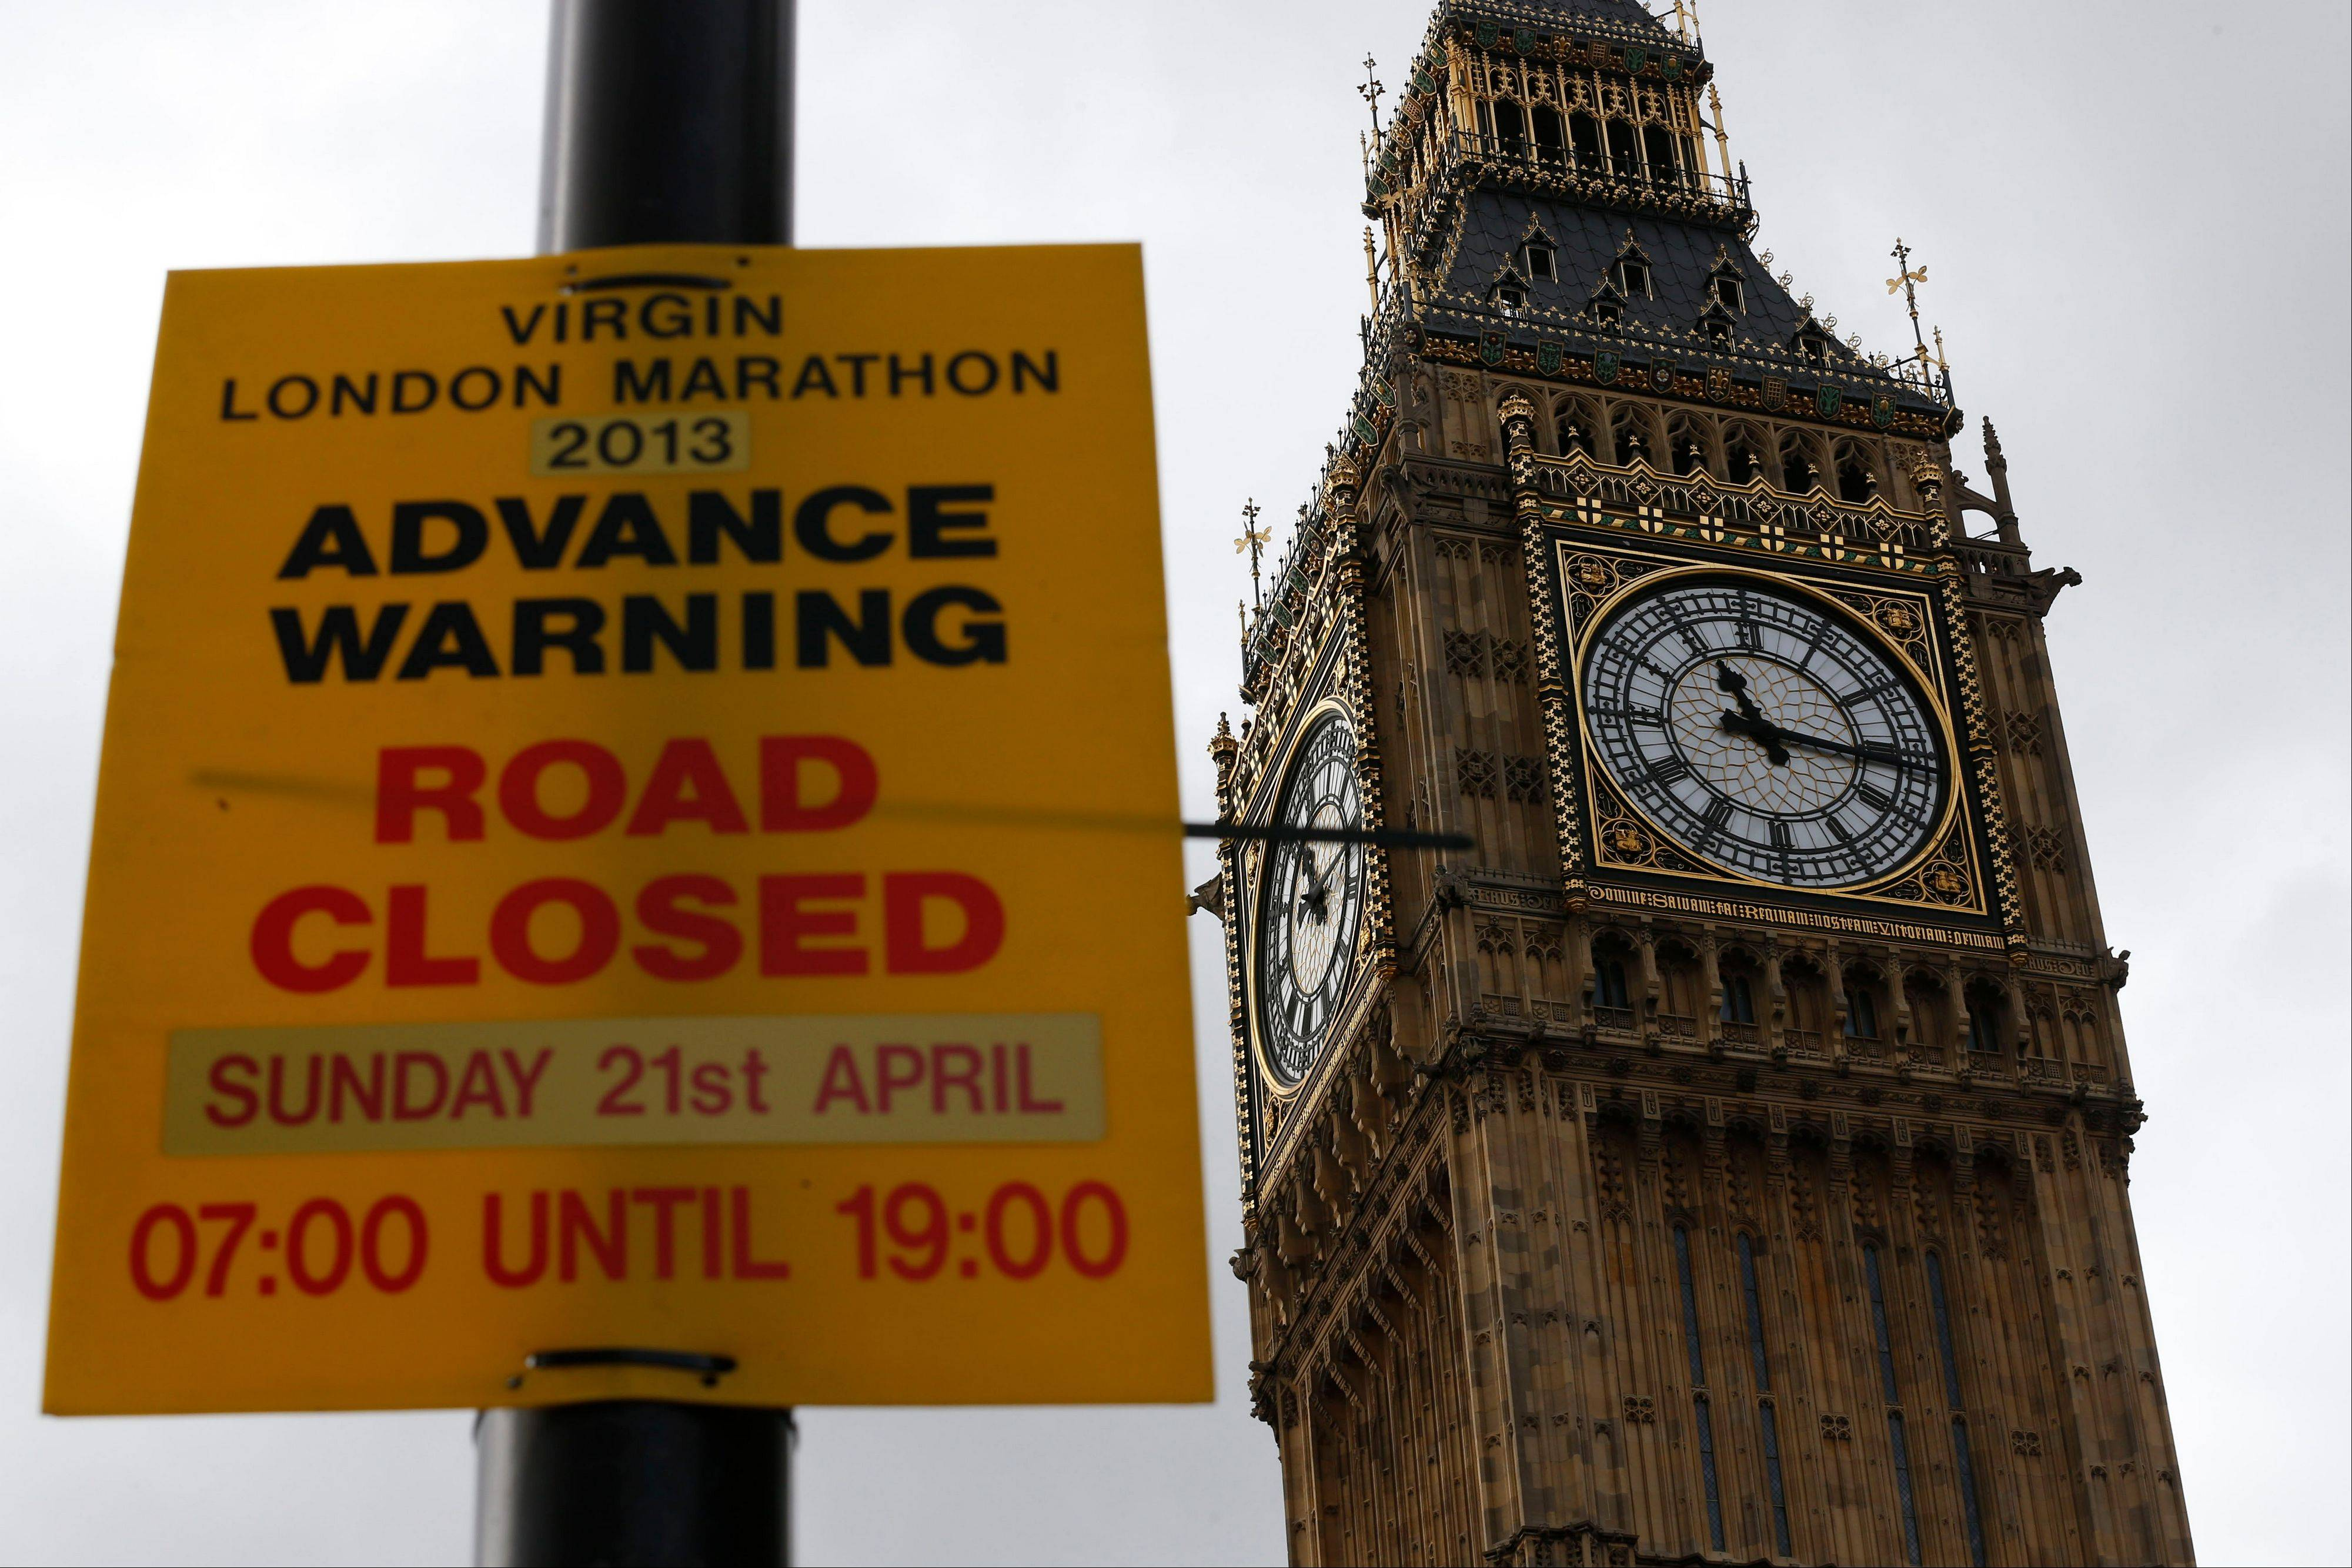 Back dropped by Big Ben, a warning sign for road closures at the forthcoming London Marathon is displayed along the marathon route in London, Tuesday, April 16, 2013. British police are reviewing security plans for Sunday�s London Marathon, the next major international marathon, because of the bombs that killed three people at the marathon in Boston Monday.